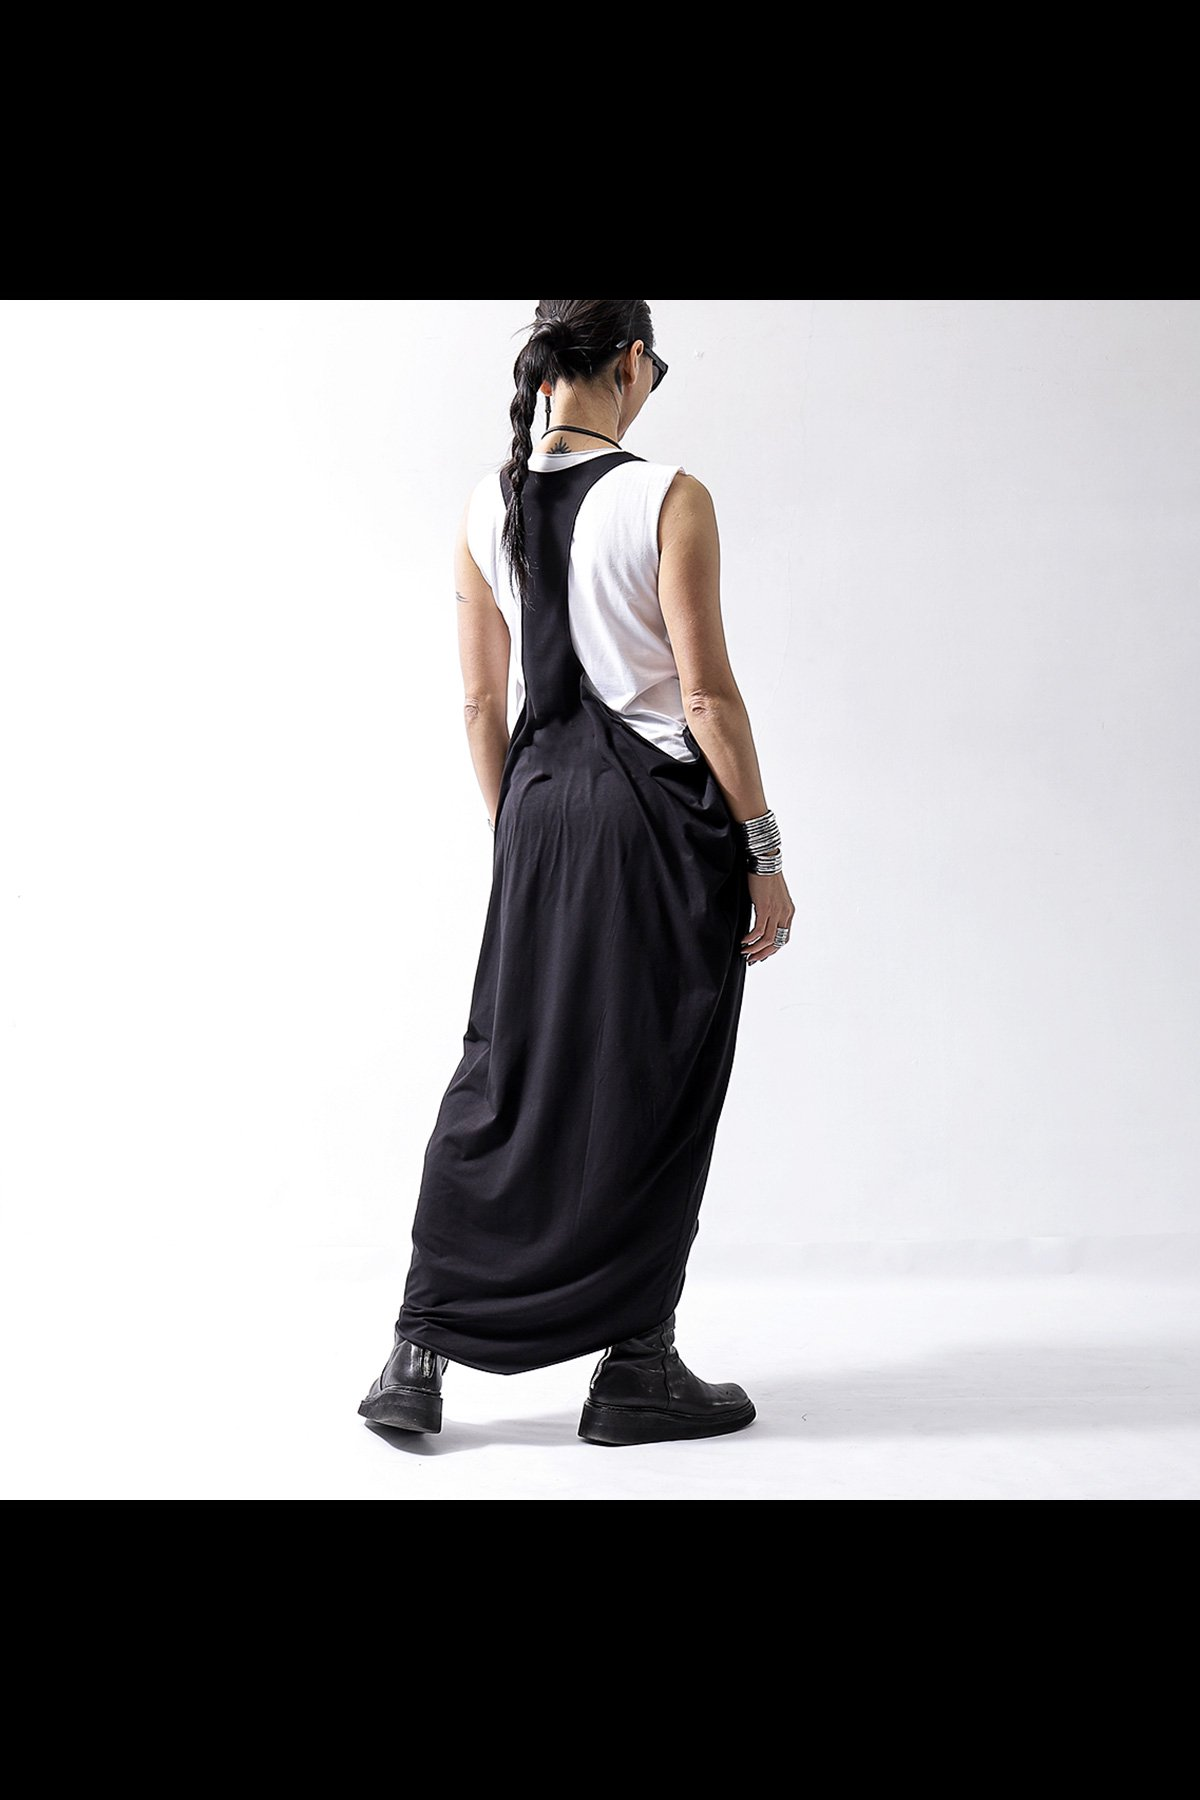 <img class='new_mark_img1' src='https://img.shop-pro.jp/img/new/icons8.gif' style='border:none;display:inline;margin:0px;padding:0px;width:auto;' />LONG TANK COCOON DRESS D62_BLACK